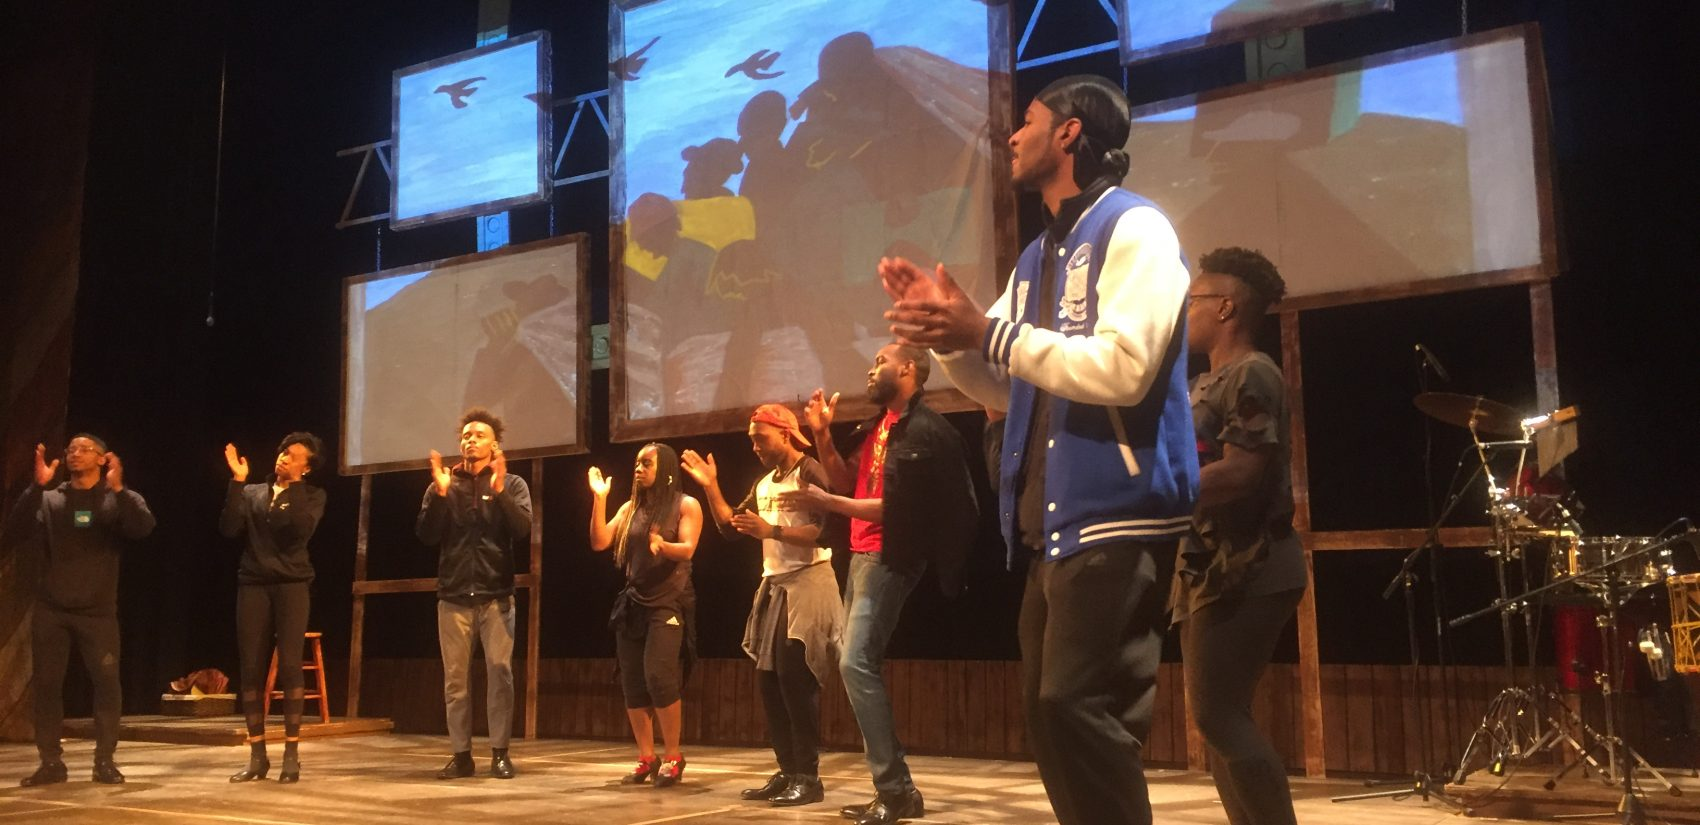 Step Afrika! rehearses for its performance in Wilmington. (Zoe Read/WHYY)